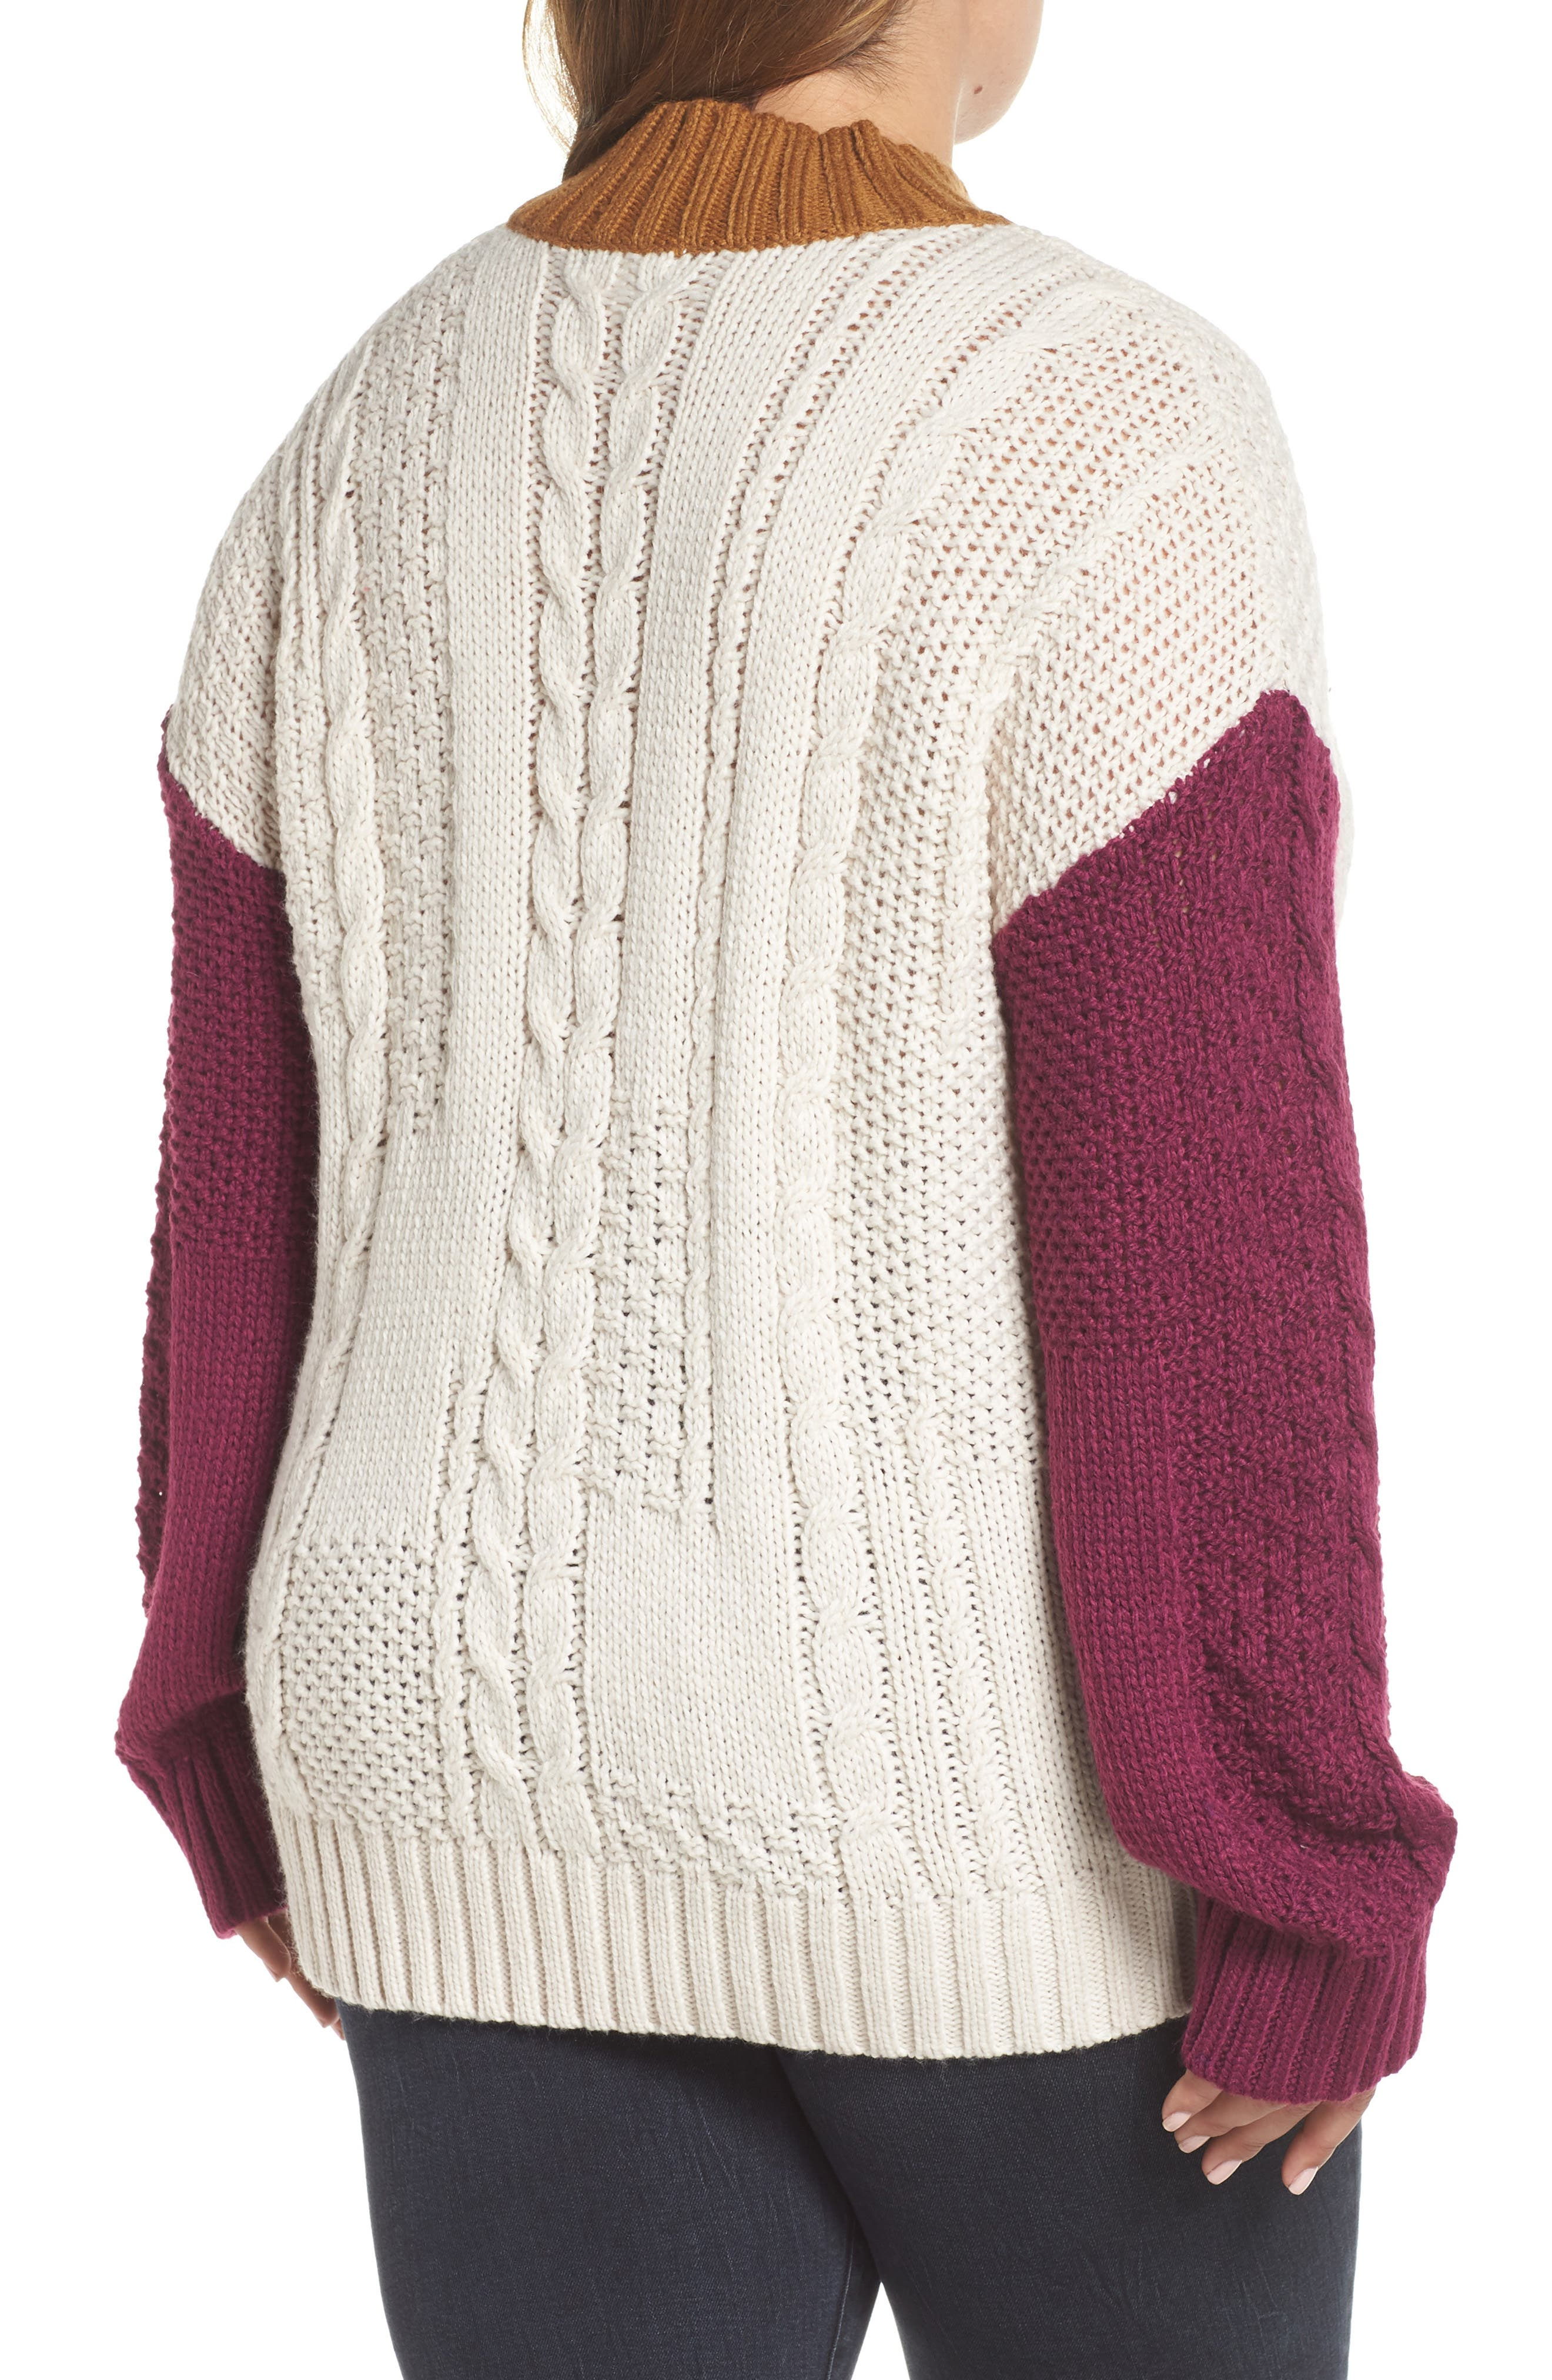 Colorblock Cable Knit Pullover,                             Alternate thumbnail 8, color,                             270